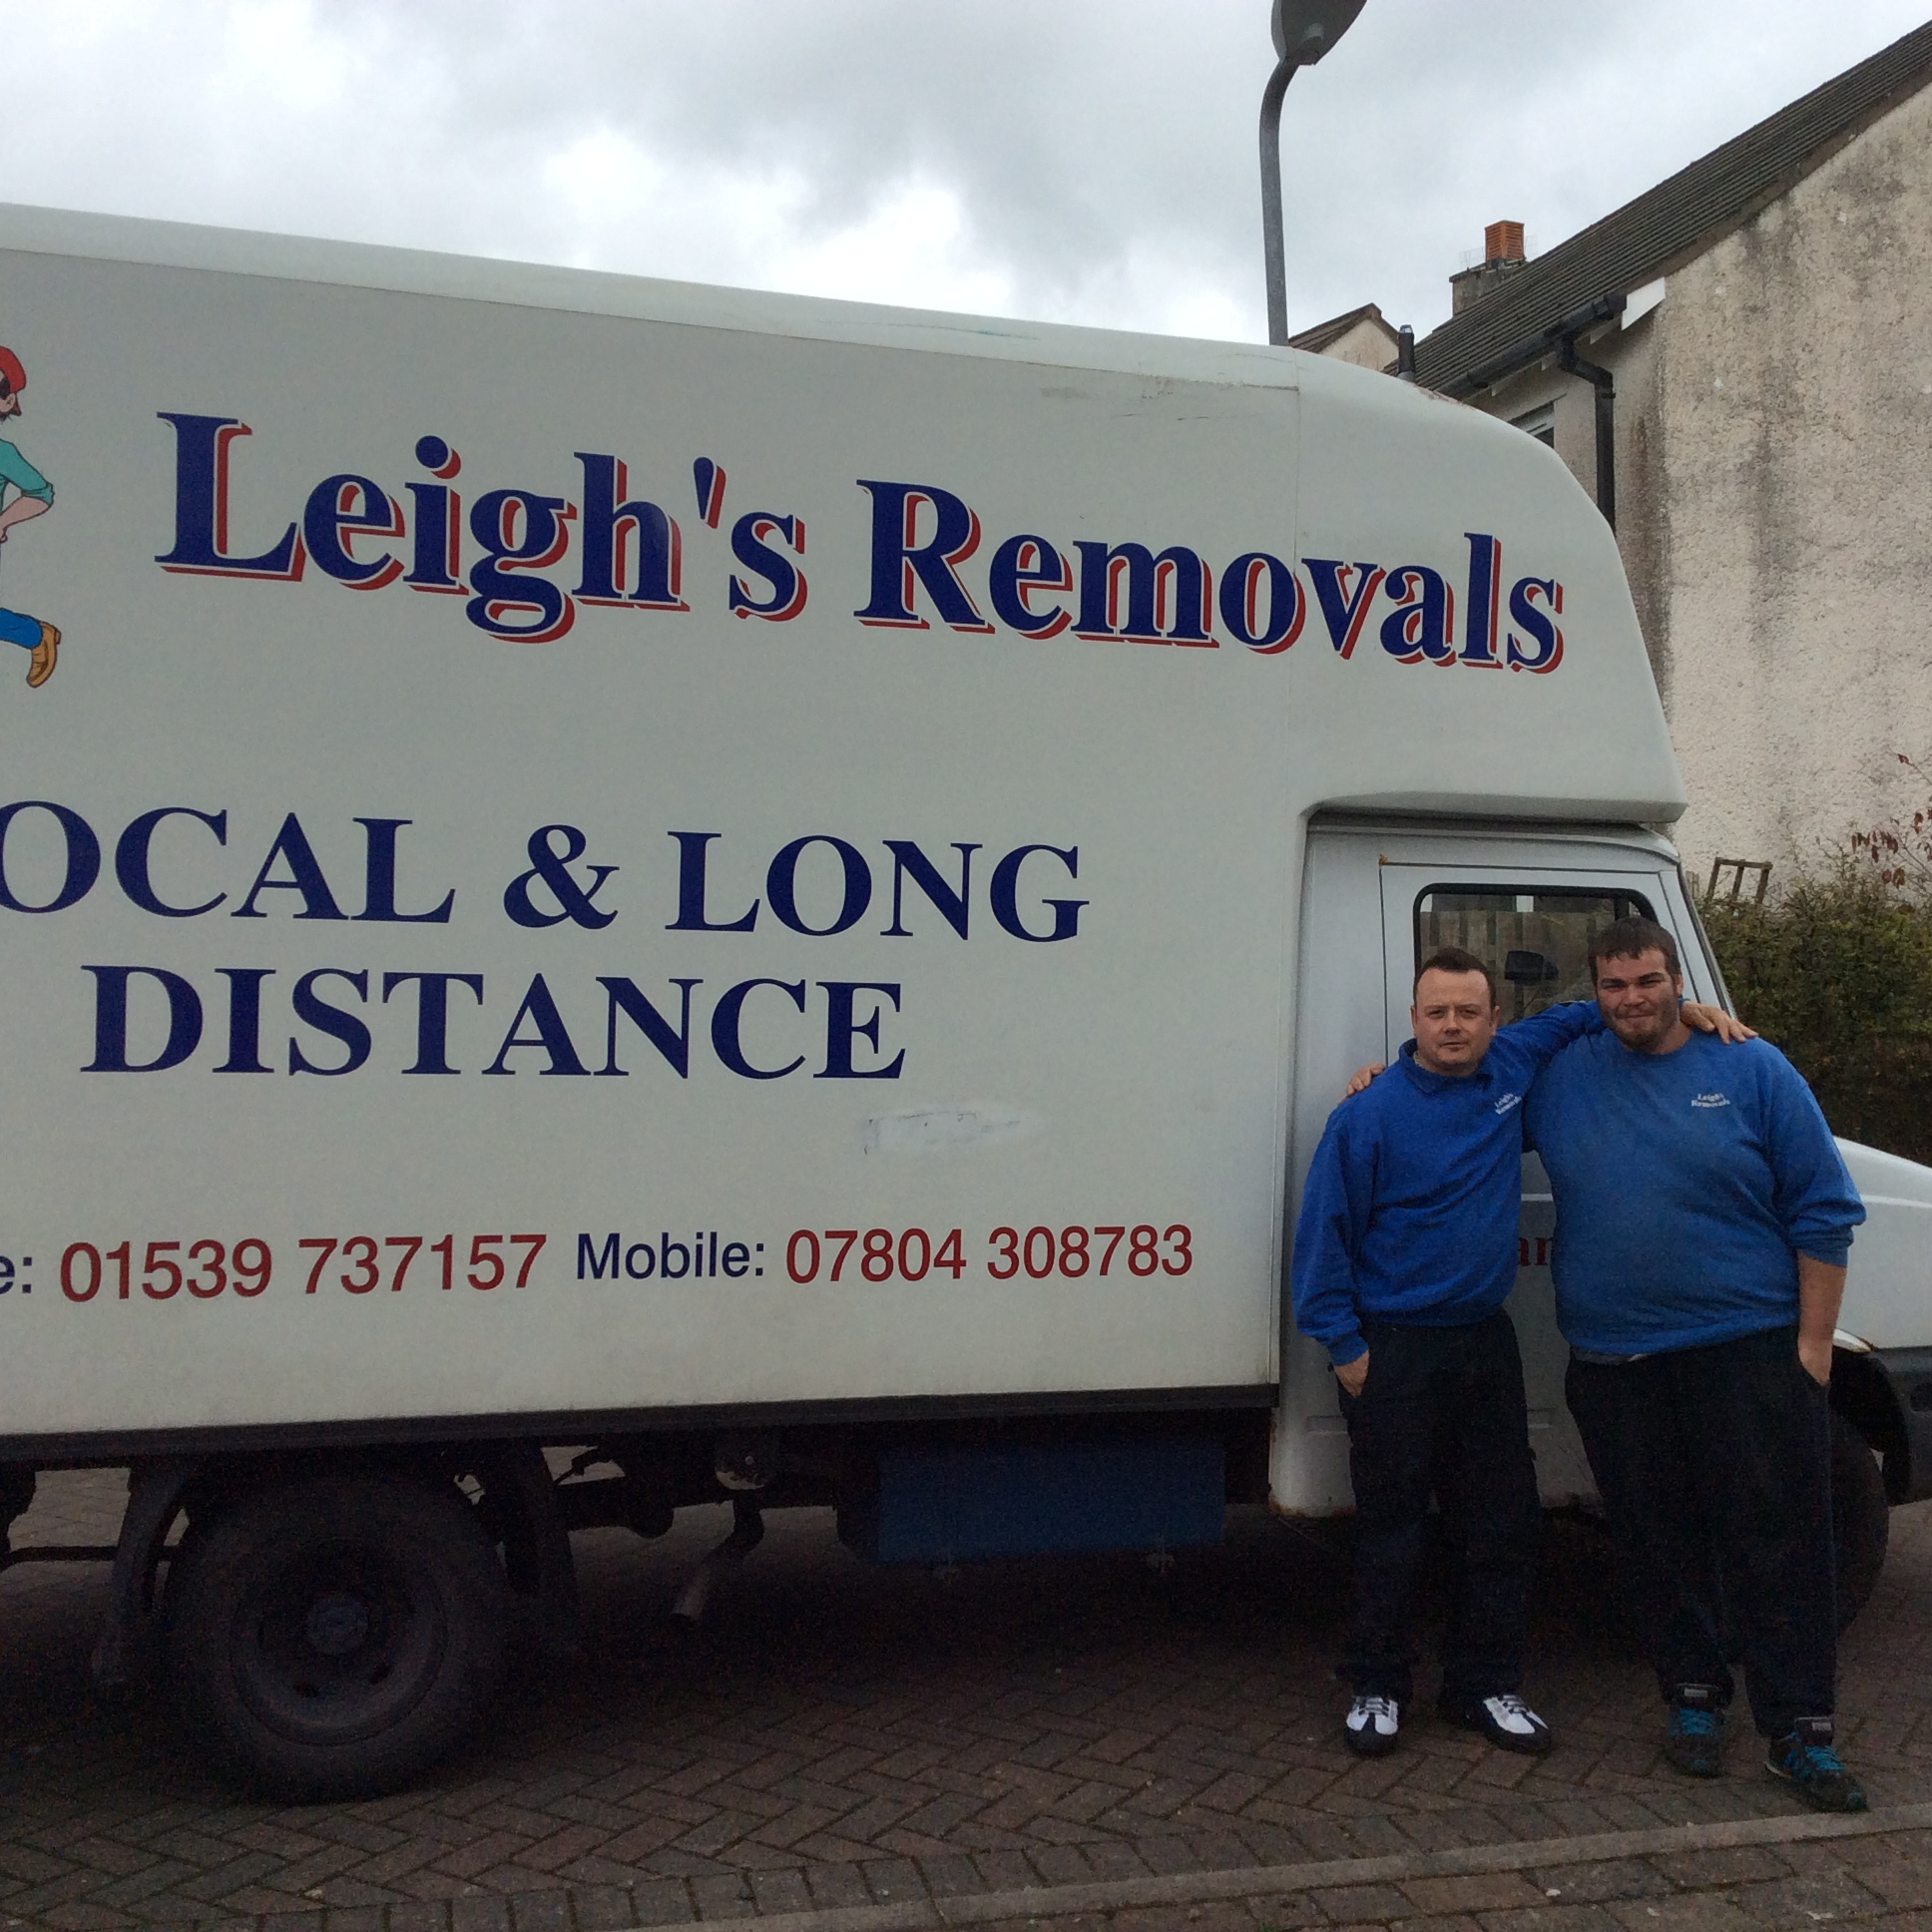 Leigh 39 S Removals In Kendal Address Telephone Number And Opening Hours And Times Man With A